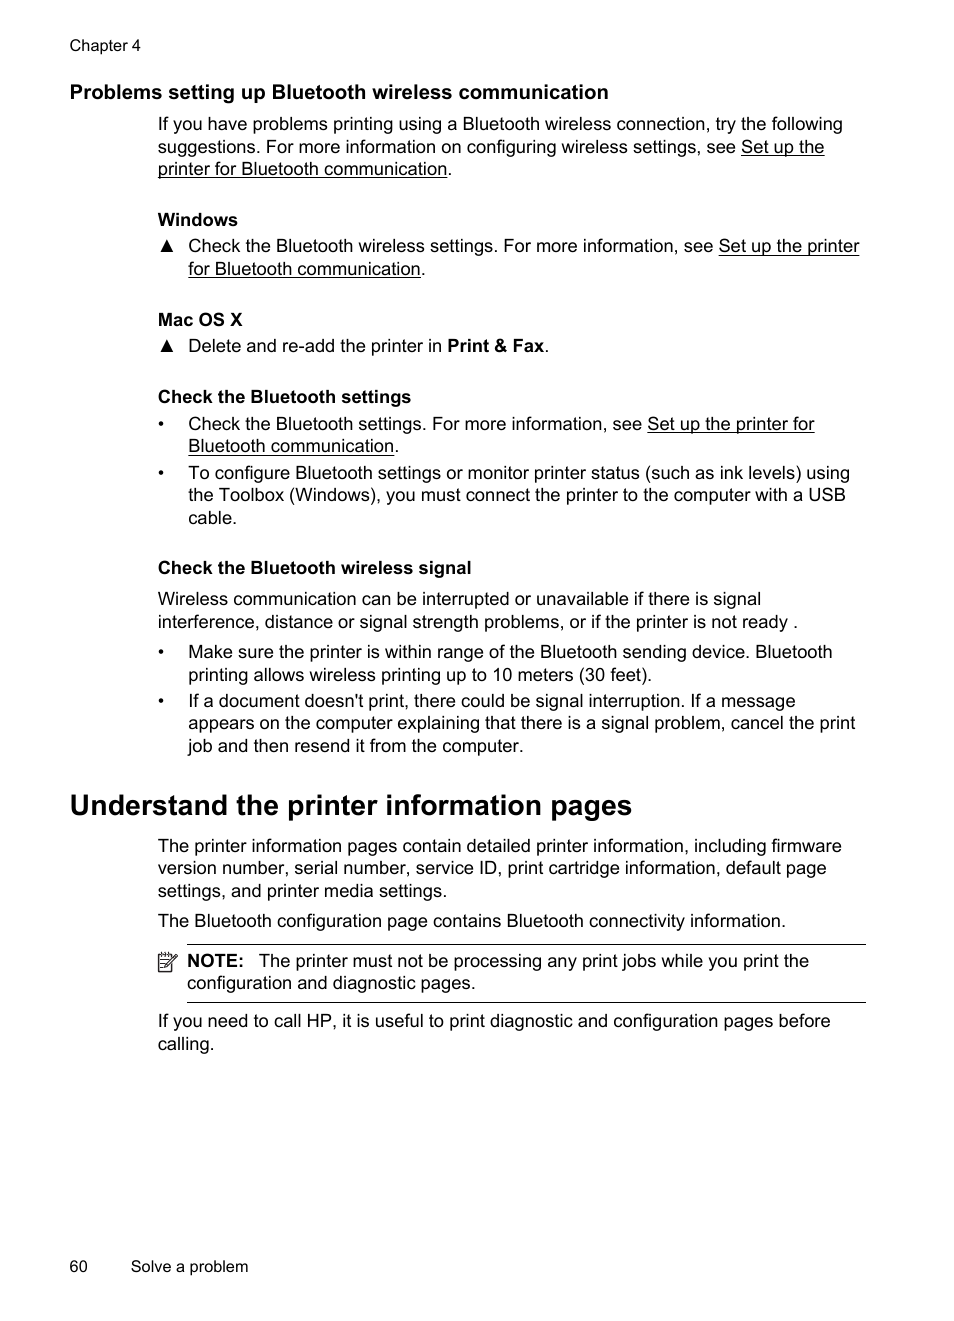 Check the bluetooth settings, Check the bluetooth wireless signal,  Understand the printer information pages